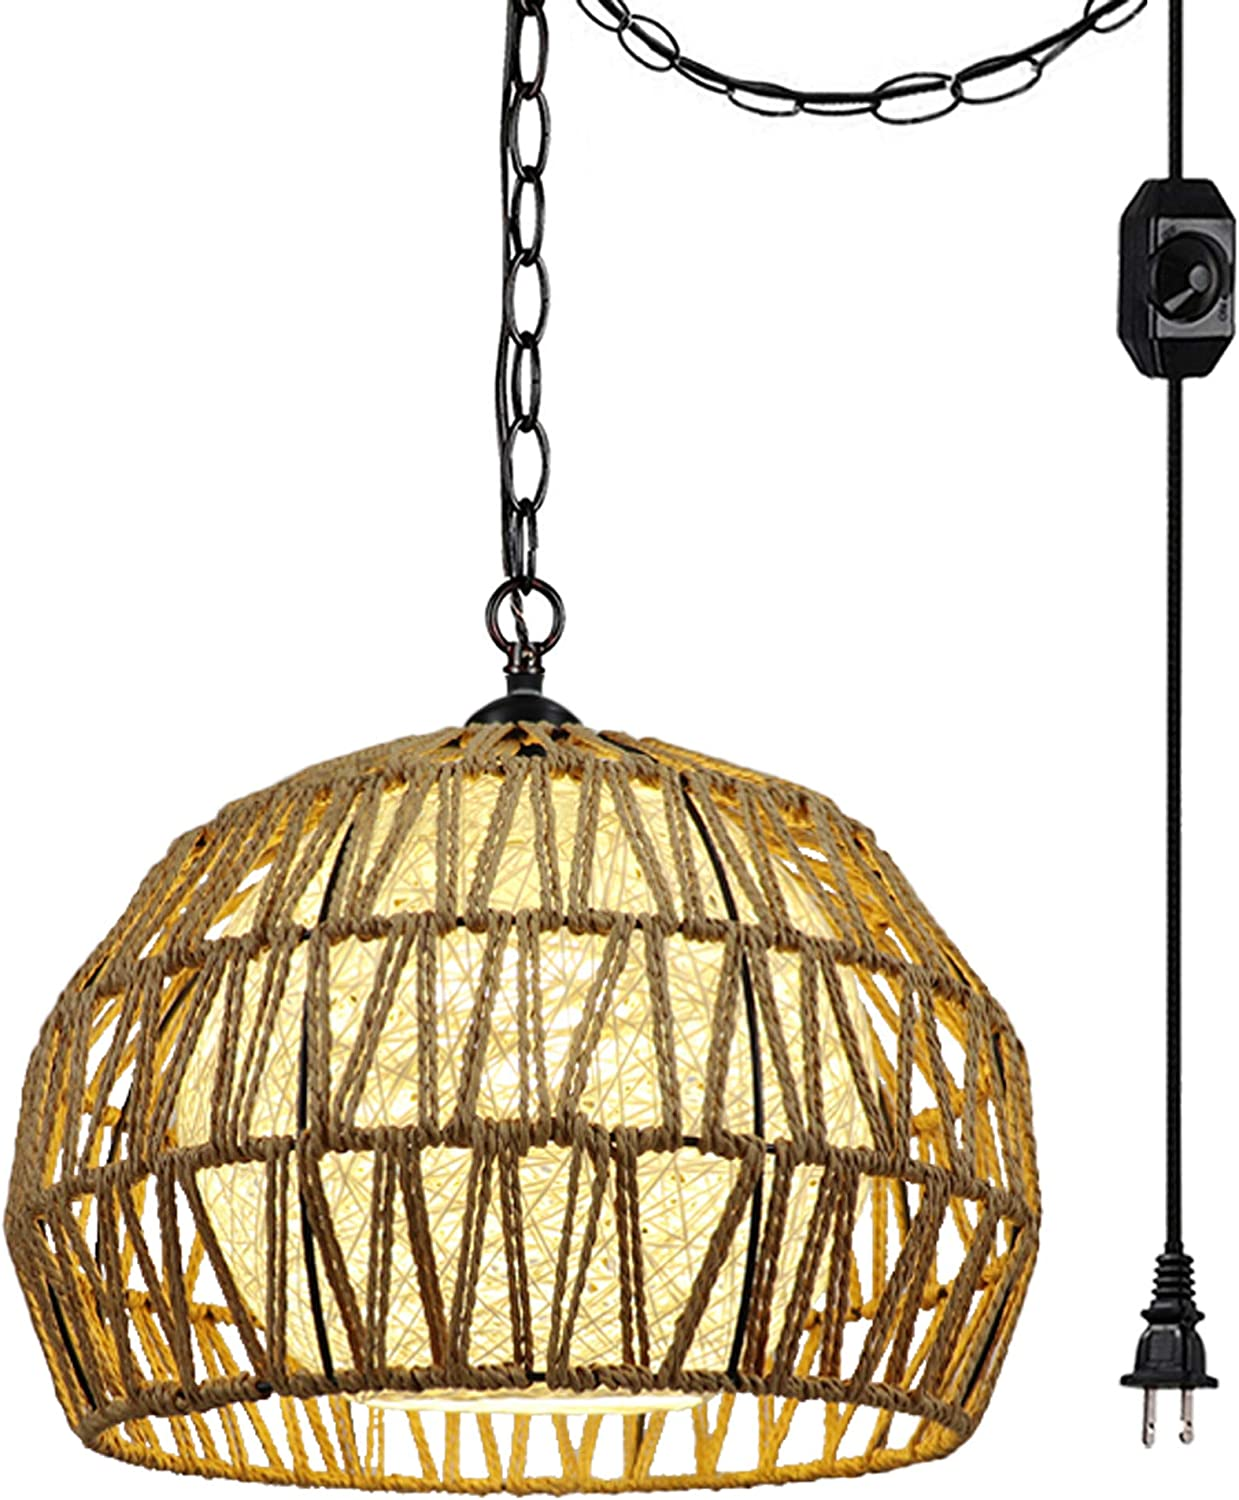 online shopping Hanging Swag Ceiling Lamp Twine Lampshade Wiri Natural No Max 80% OFF Rattan